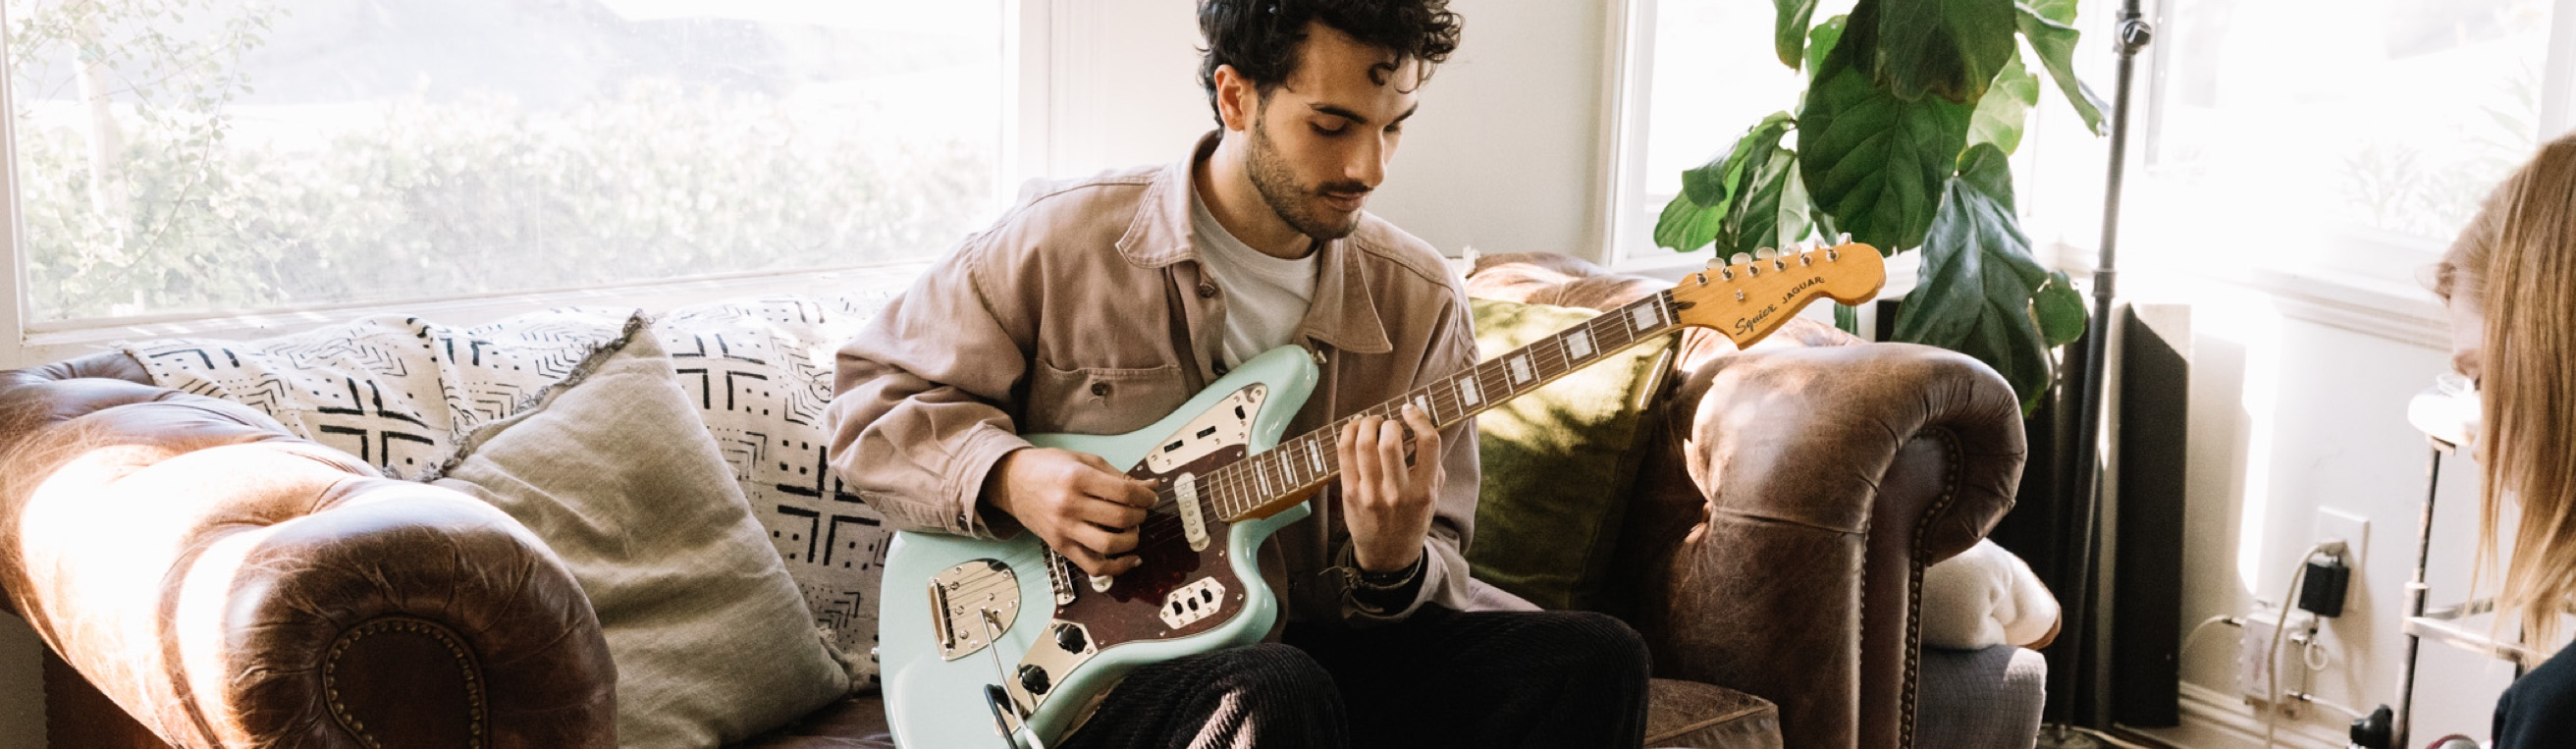 best app to learn guitar for beginners free